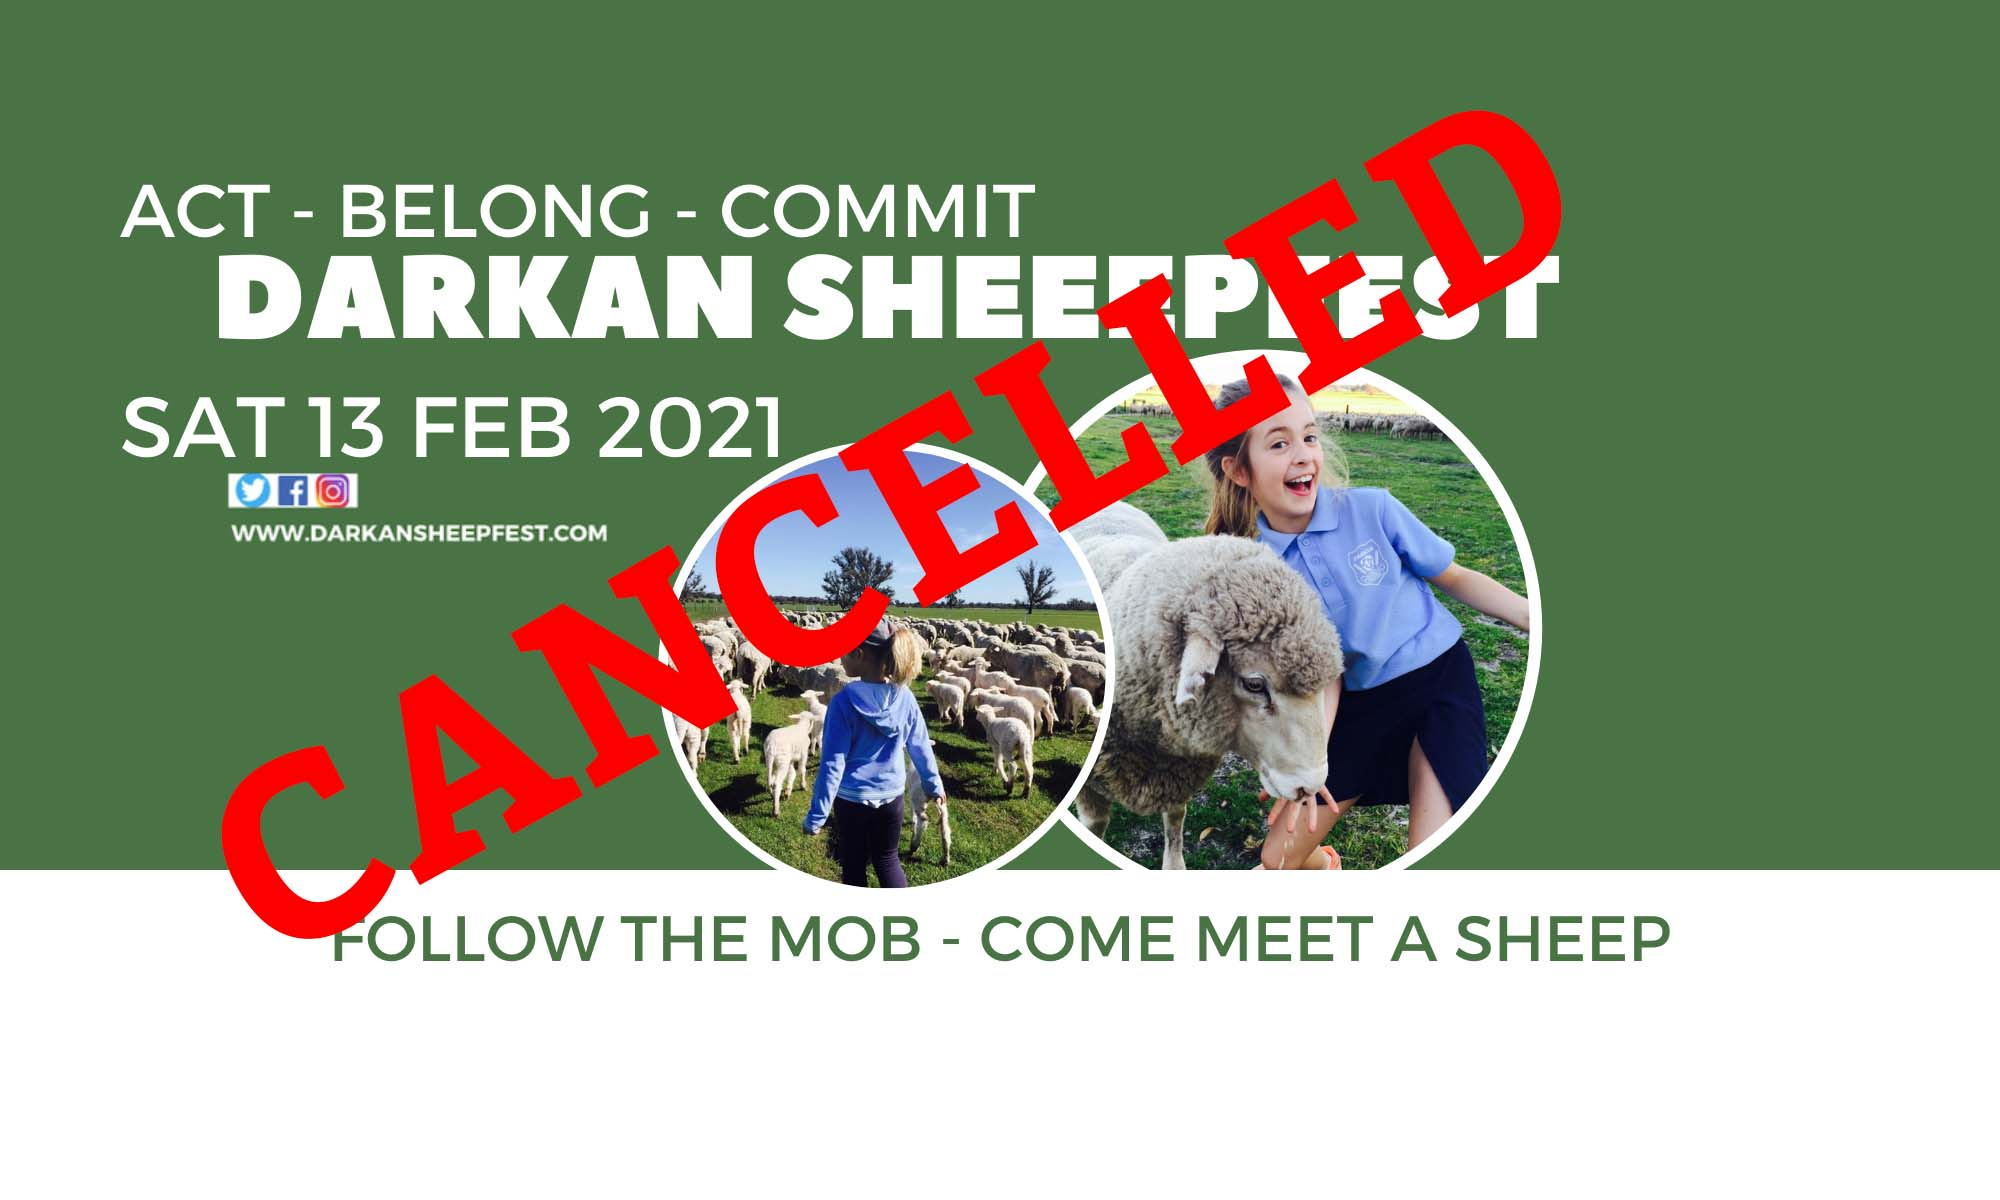 Act-Belong-Commit Darkan Sheepfest